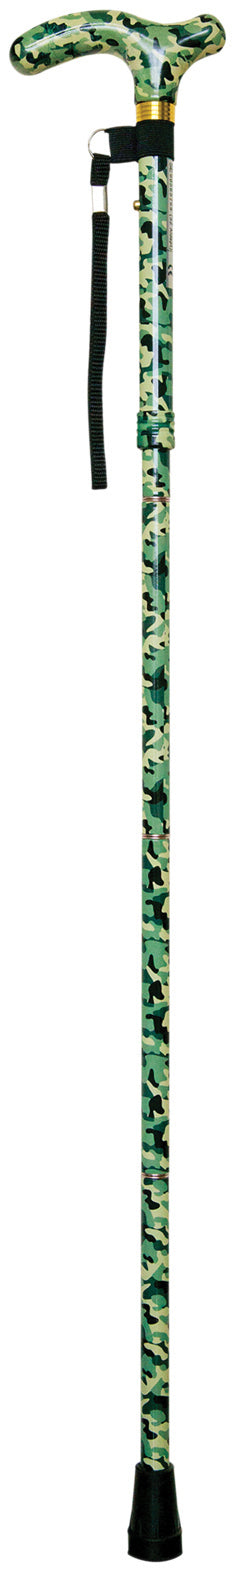 Camouflage walking stick with black ferrule and loop